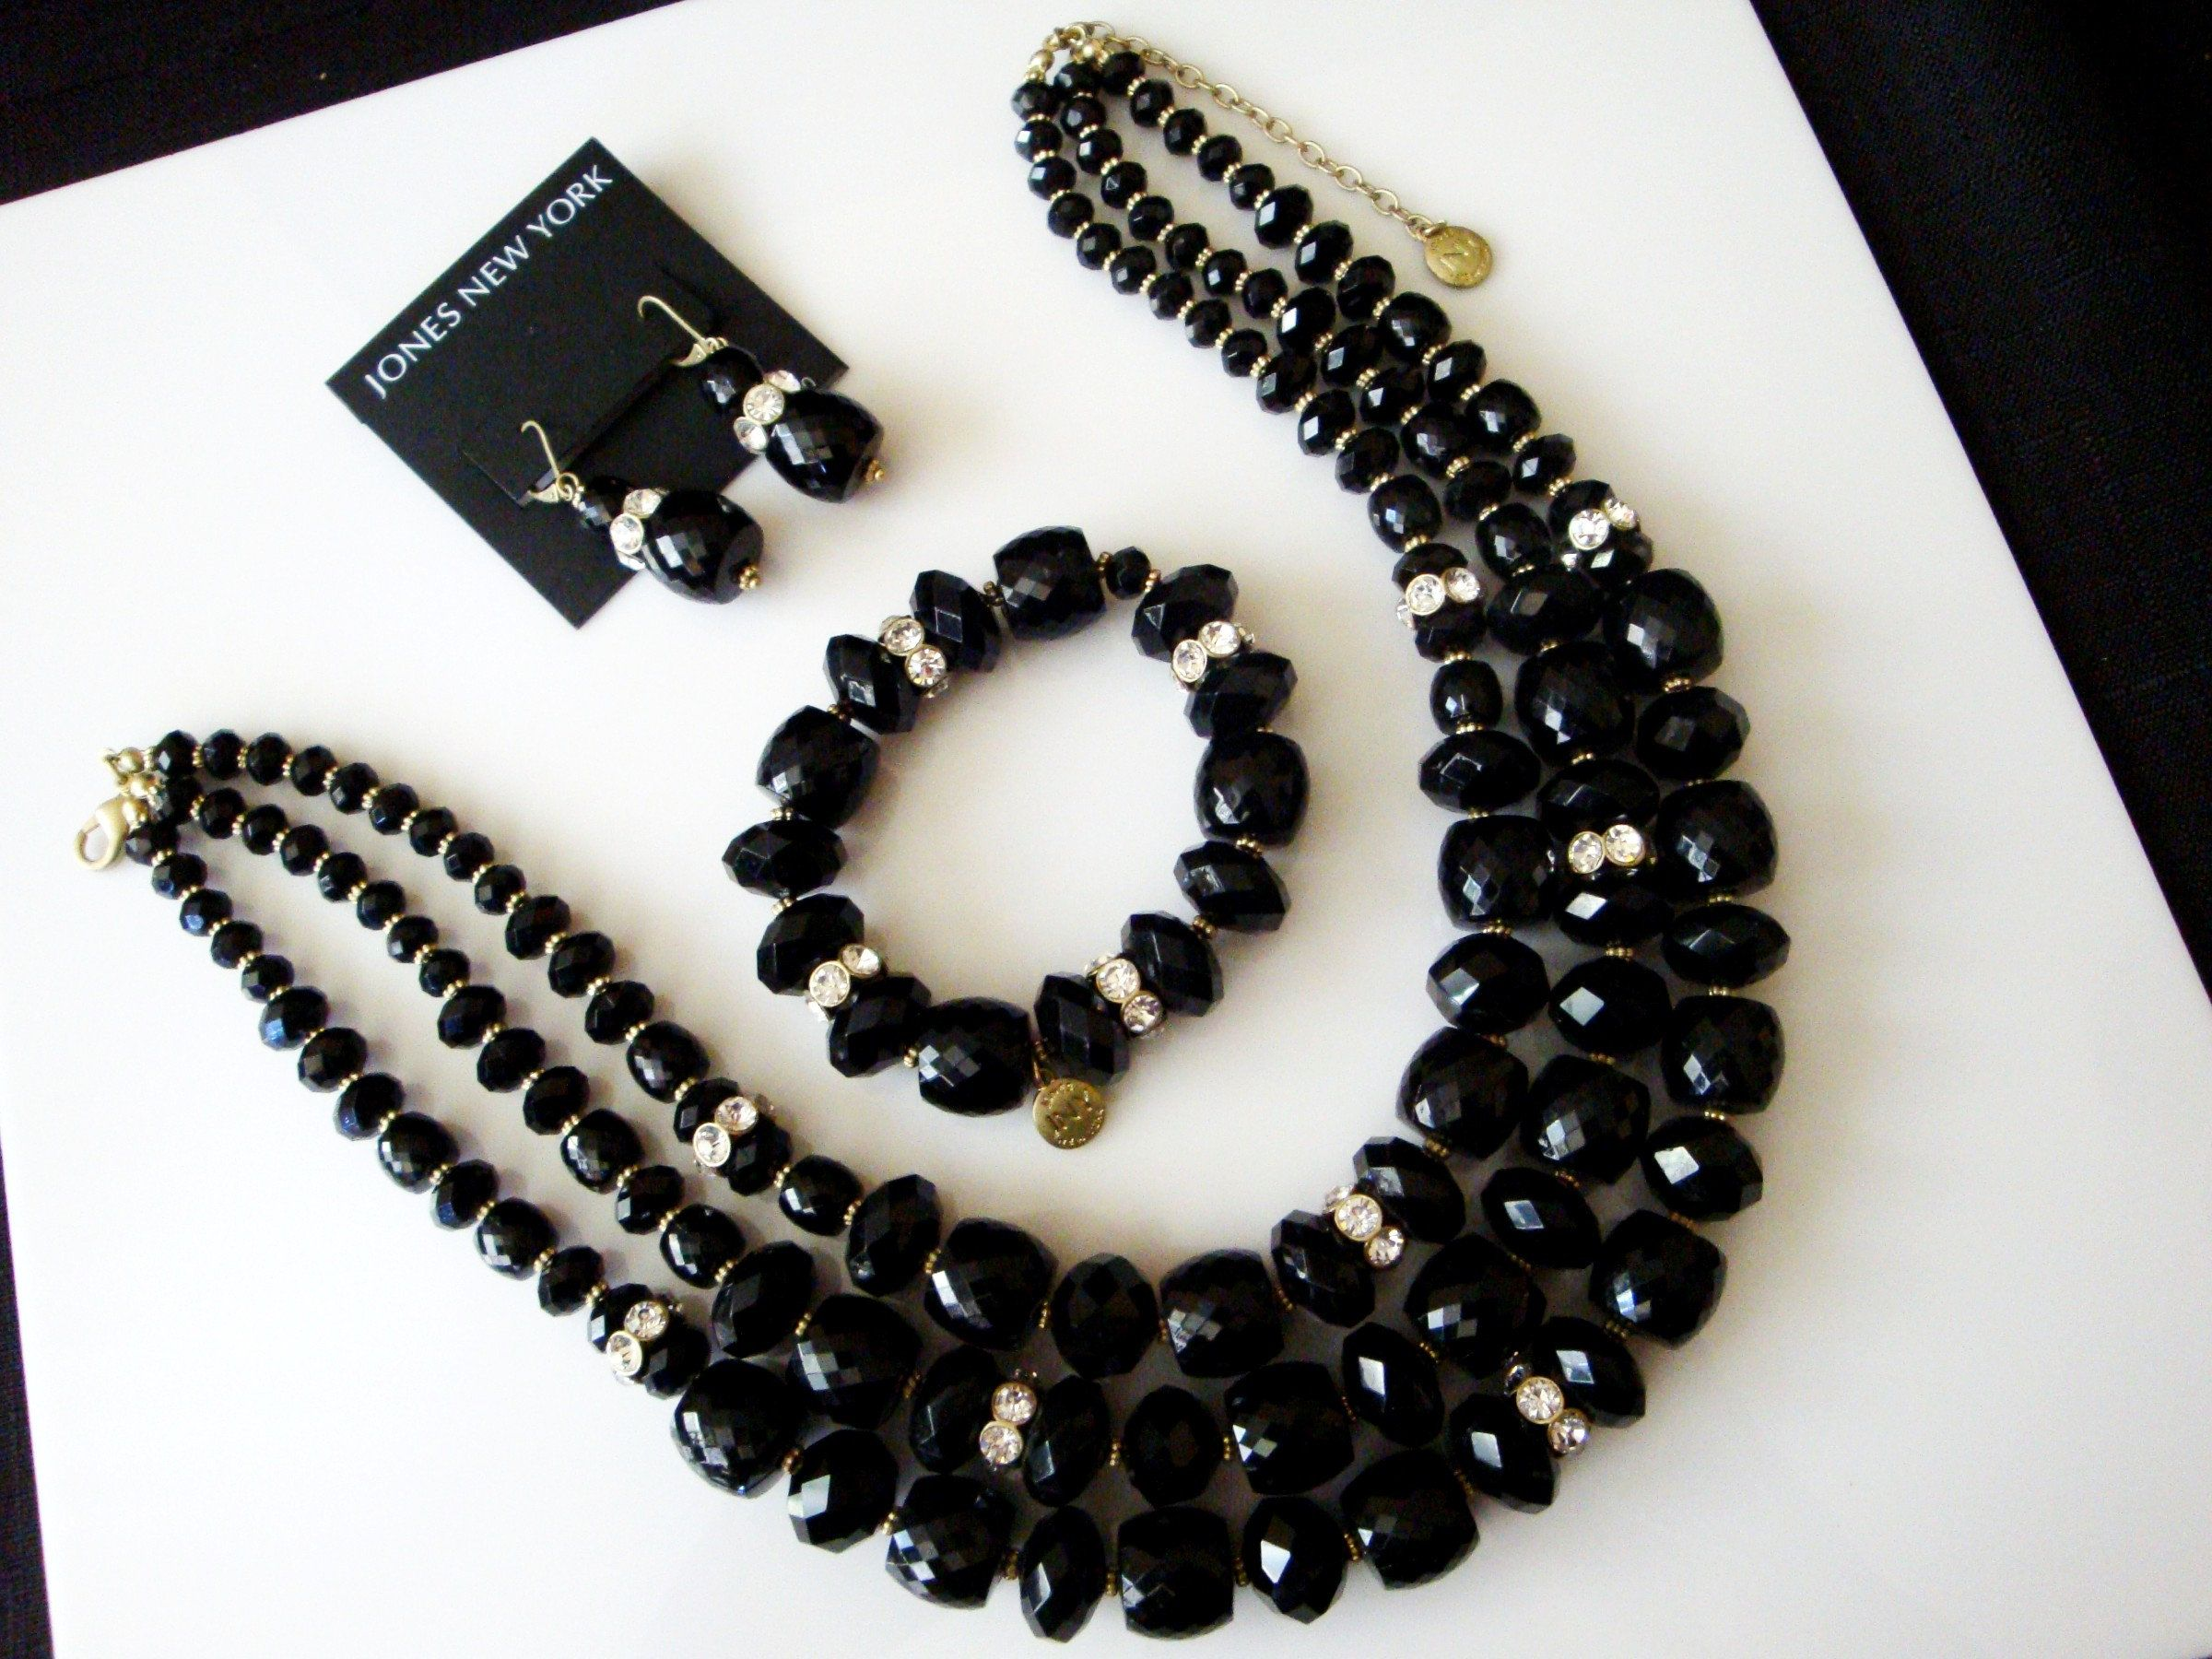 Black Bead Necklace and Dangle Earrings Black Crystals Necklace Sets: Necklace and Earring Sets Black Jewelry.